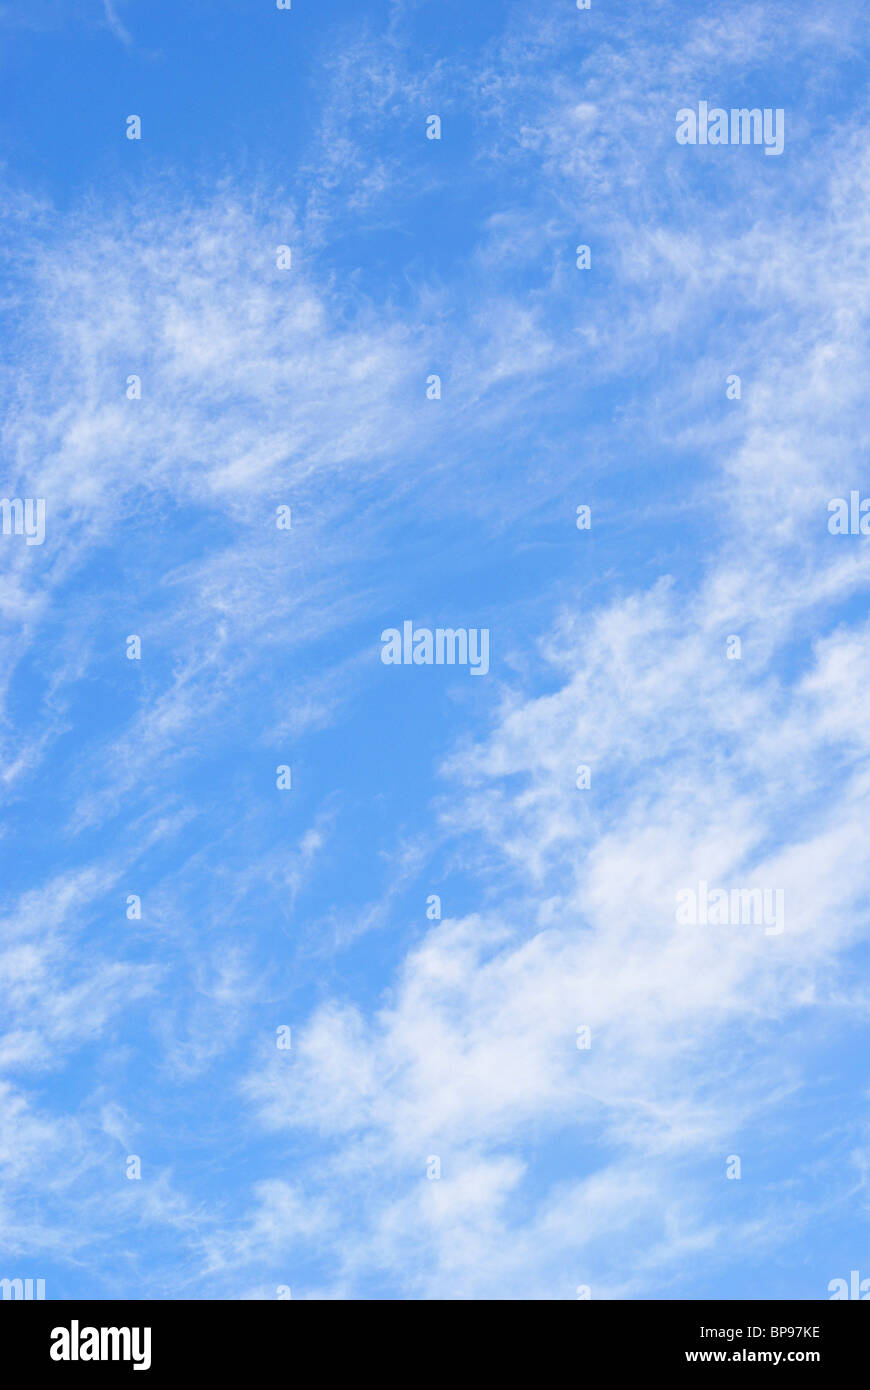 White Wispy Clouds in Evening Sky - Stock Image